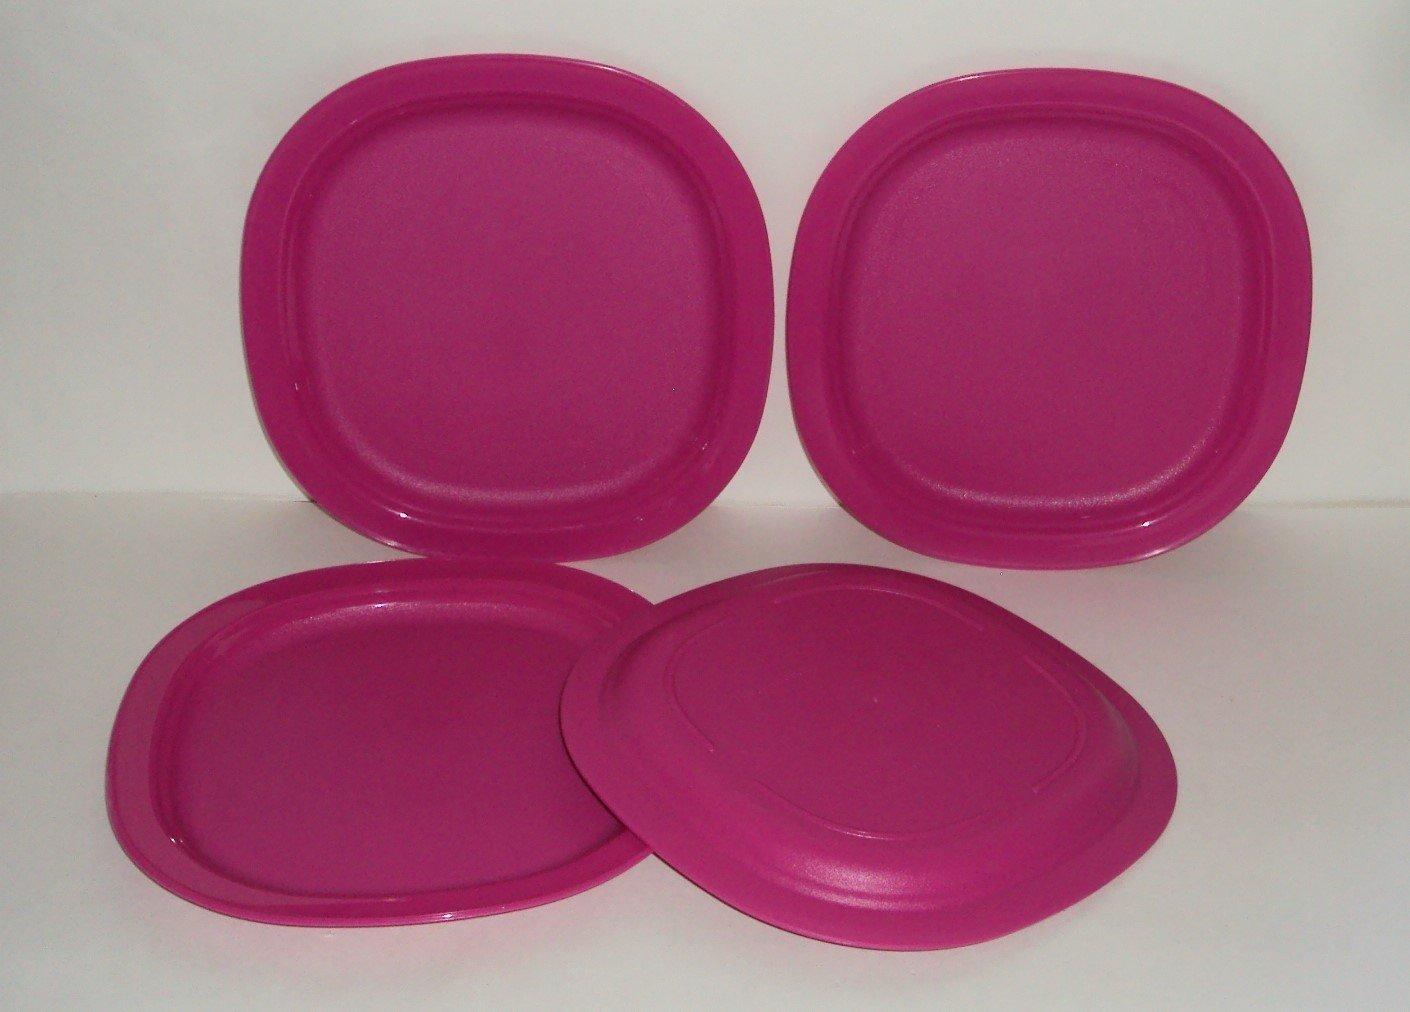 Tupperware Set of 4 Open House Microwave 7 3/4 Inch Dessert Plates Fuchsia Pink by Tupperware (Image #1)